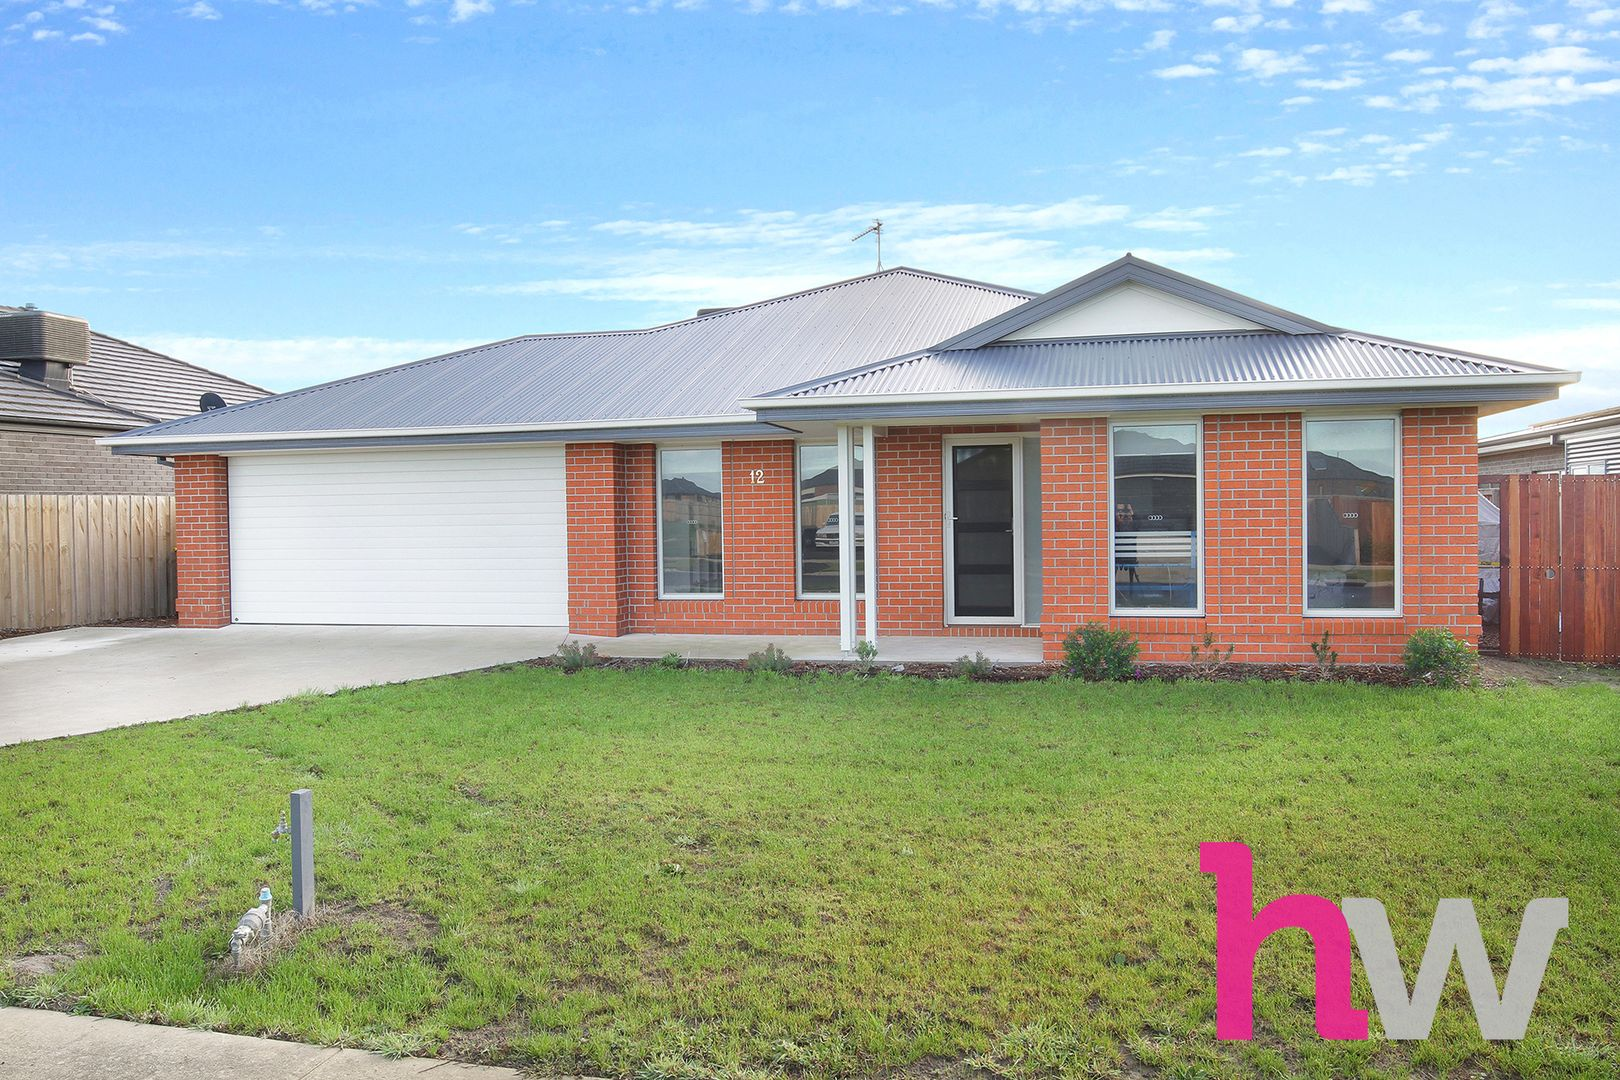 12 Glenmore Street, Winchelsea VIC 3241, Image 1